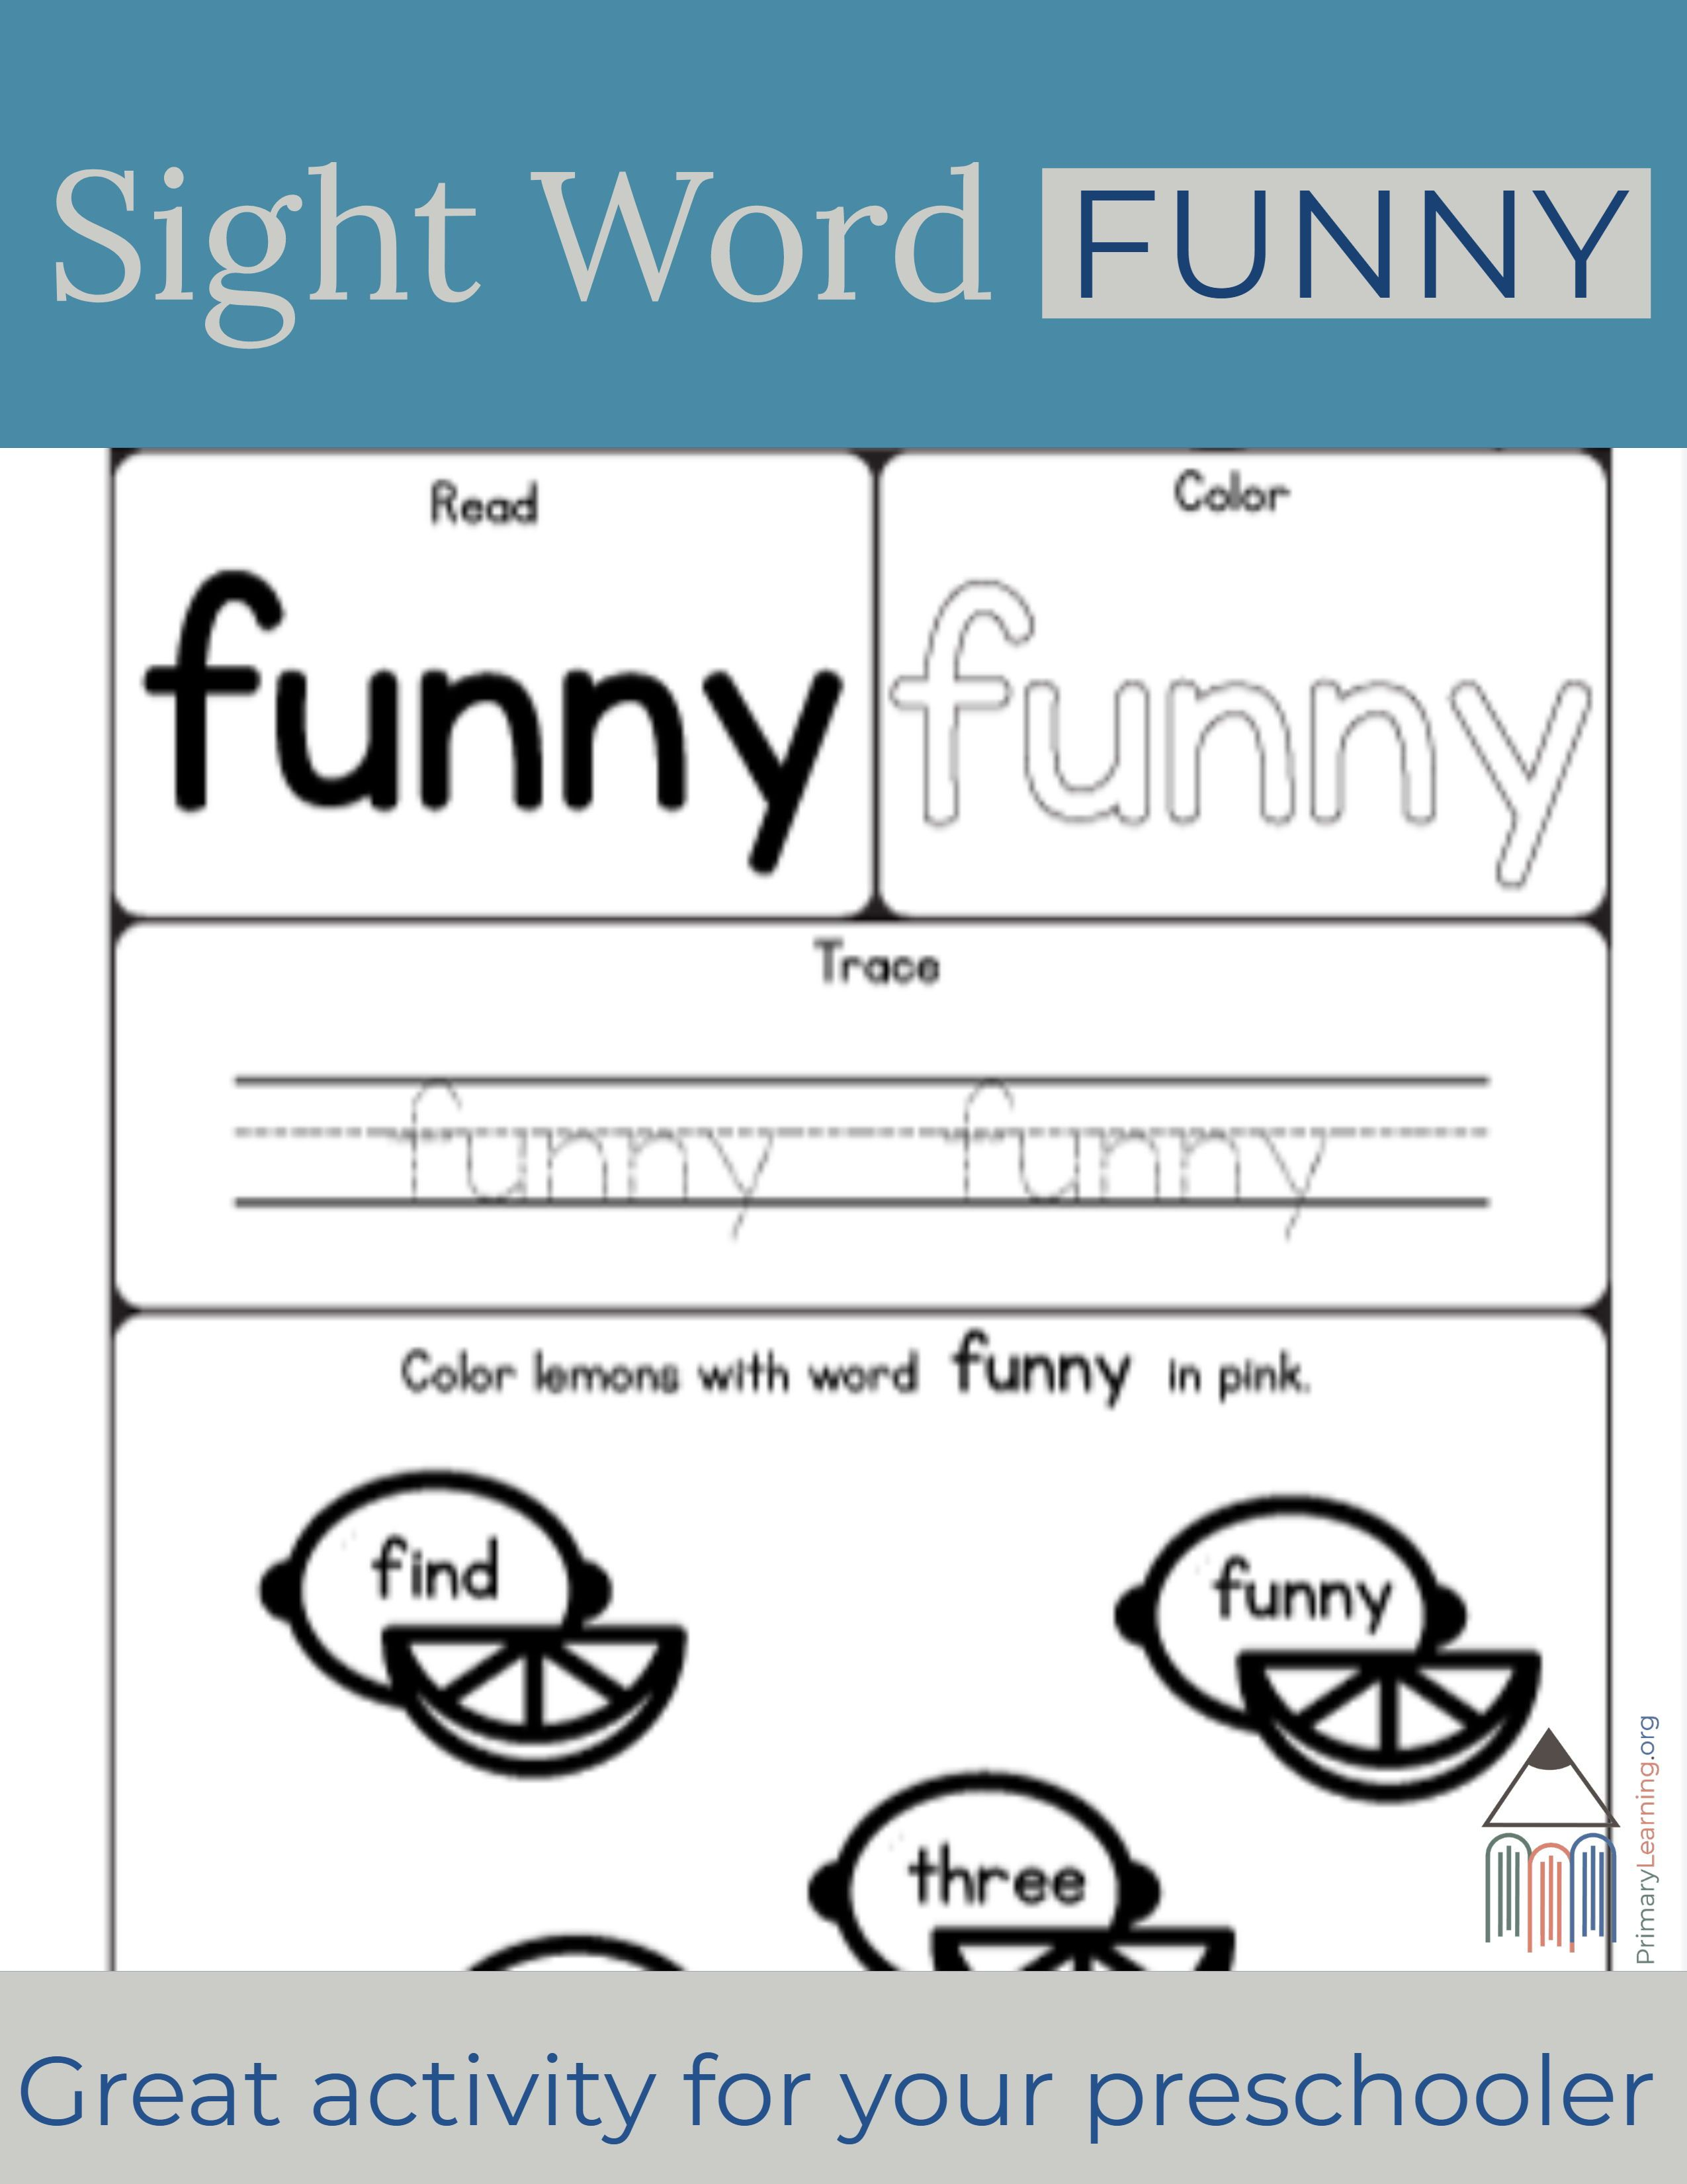 Sight Word Funny Worksheet